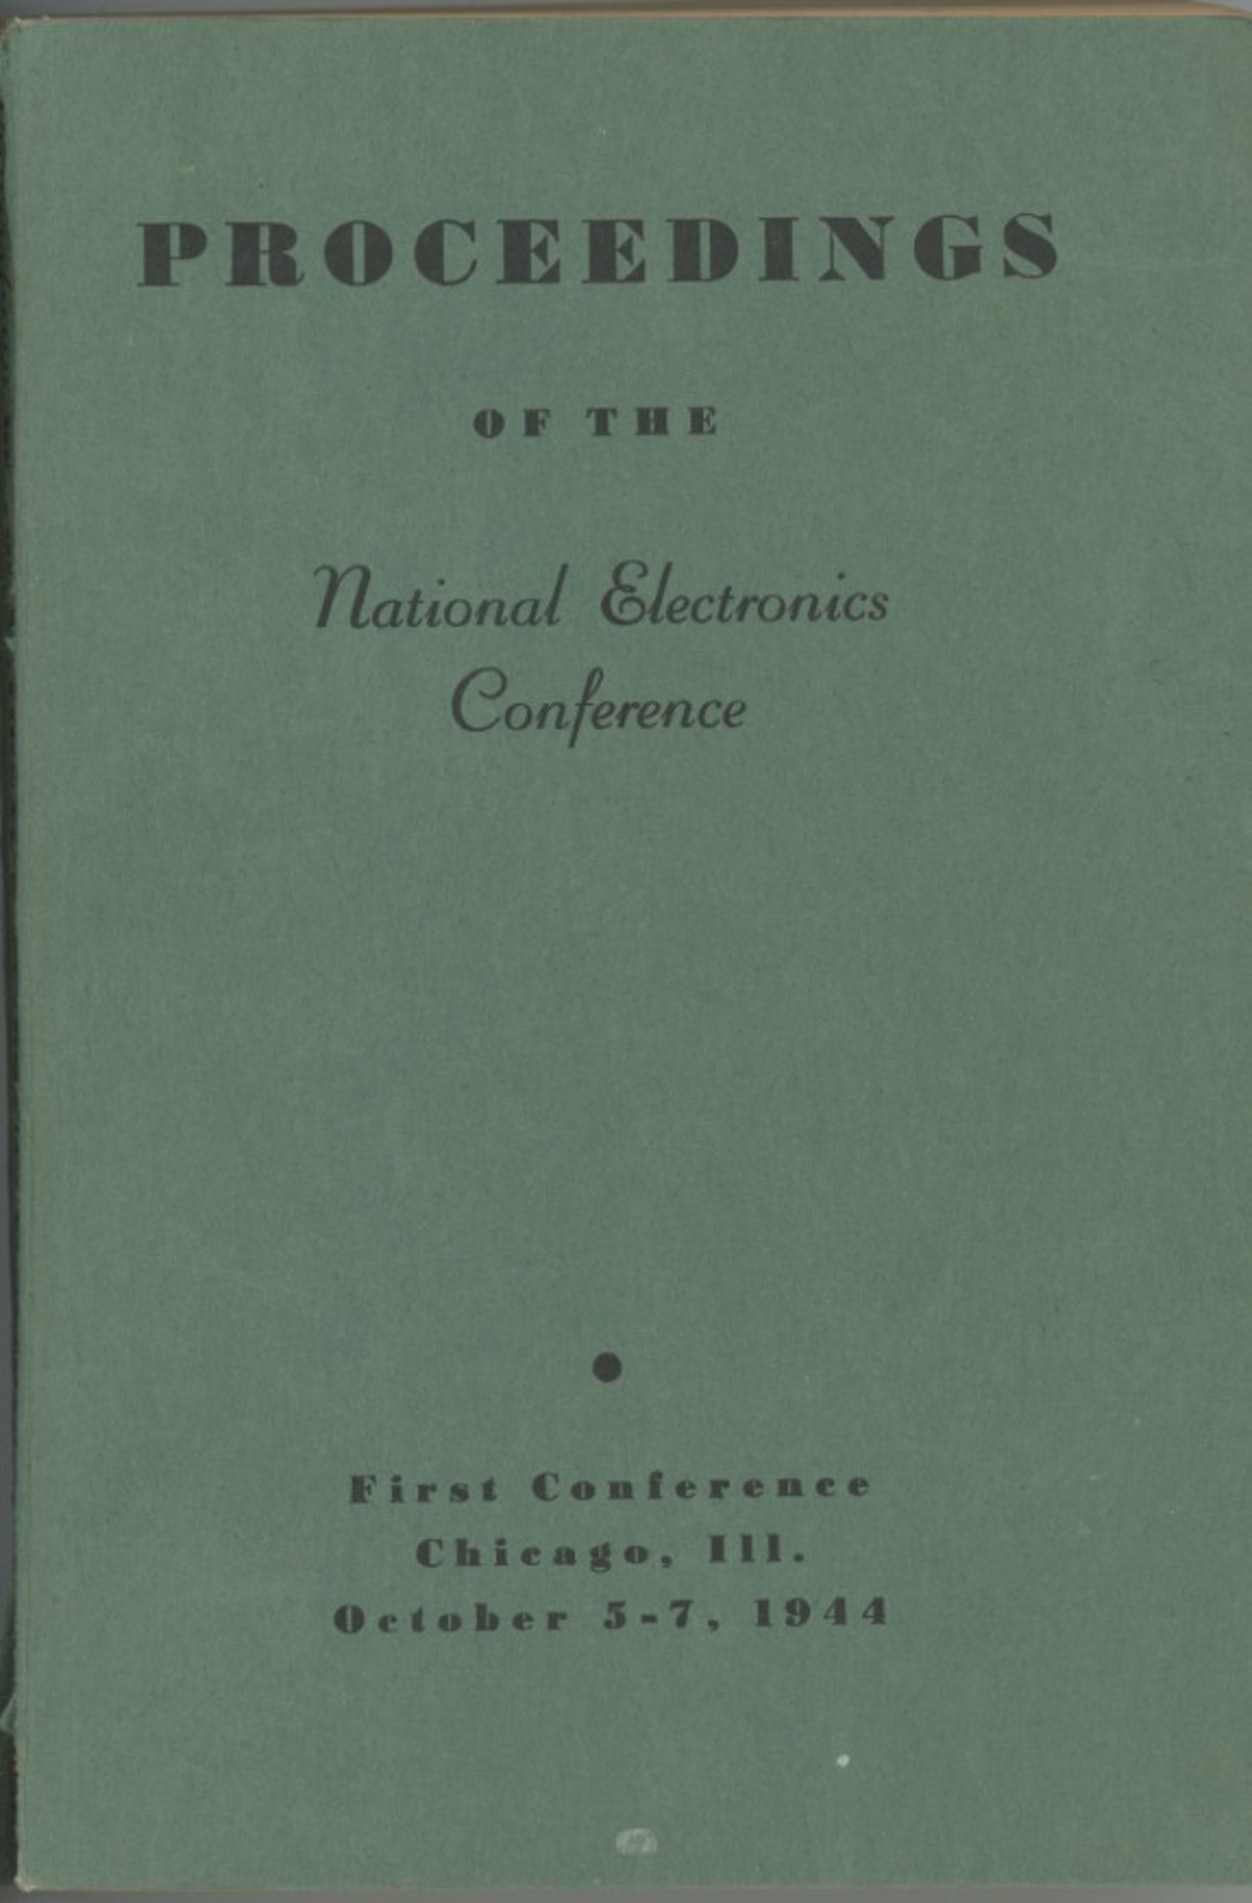 Proceedings of the National Electronics Conference